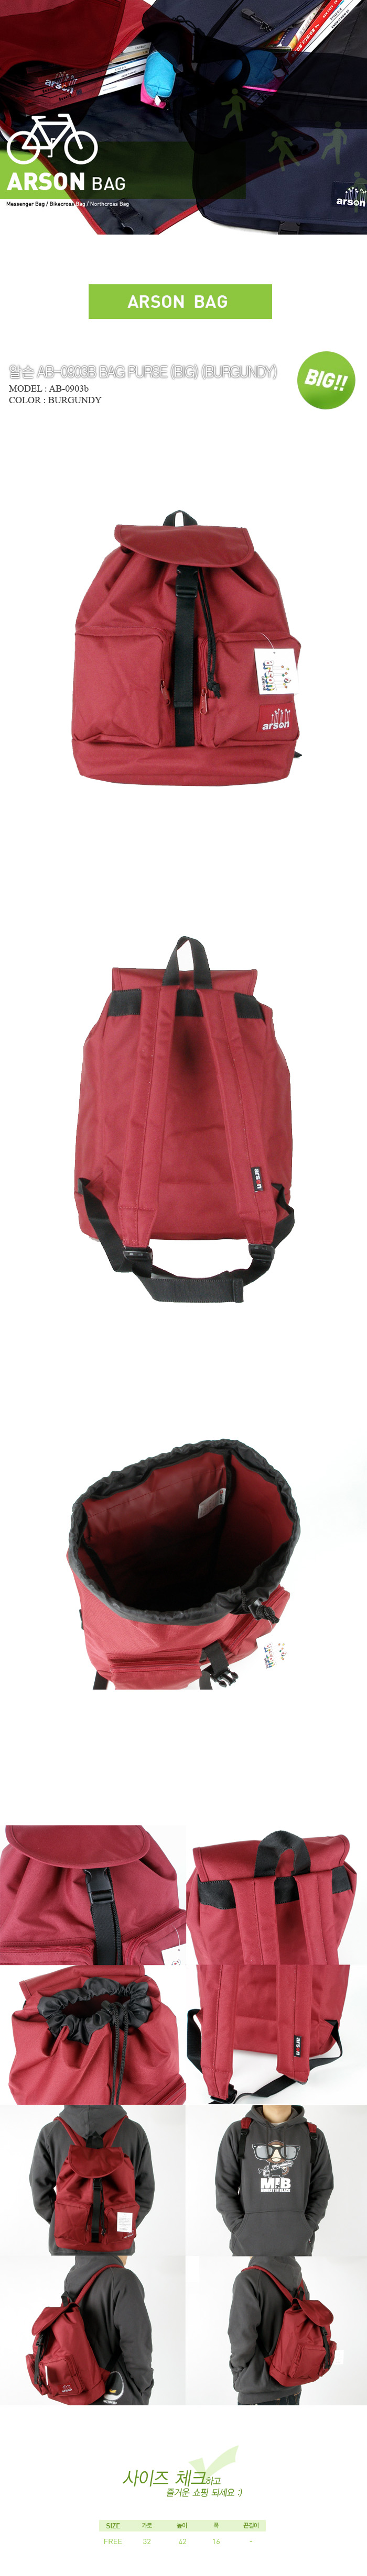 [ ARSON ] AB-0903(B) Big (Burgundy)/Backpack School Bag